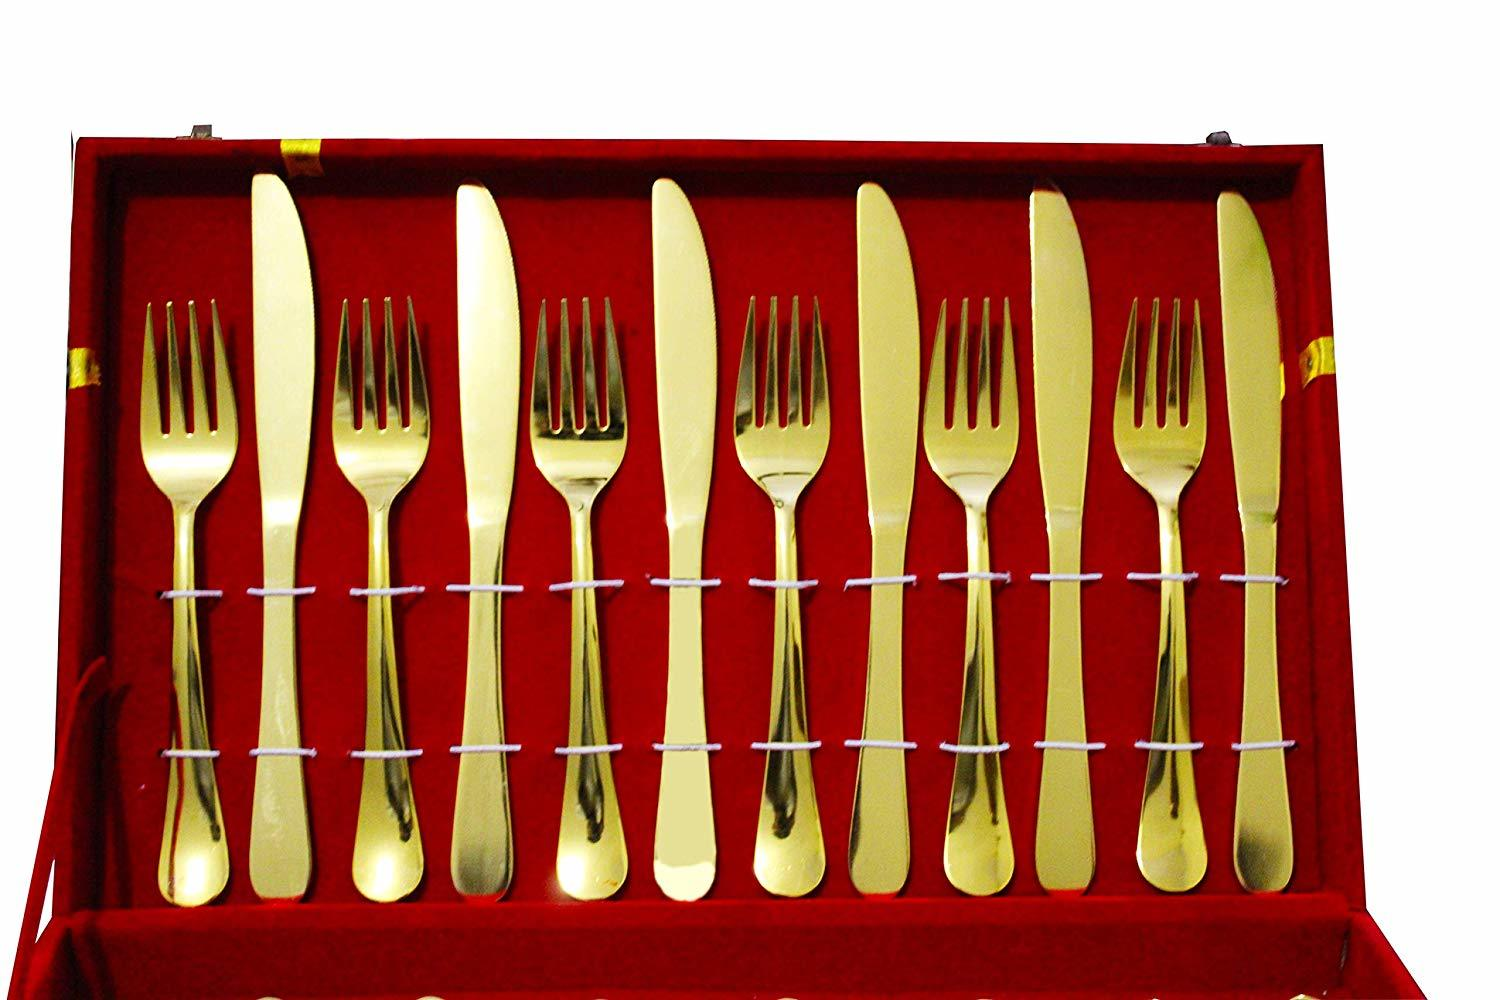 SHAHI 26pcs Stainless Steel Gold Plated Royal Cutlery Set Dinner Spoon Knives Fork Set Tableware Dinner Set:, Gold